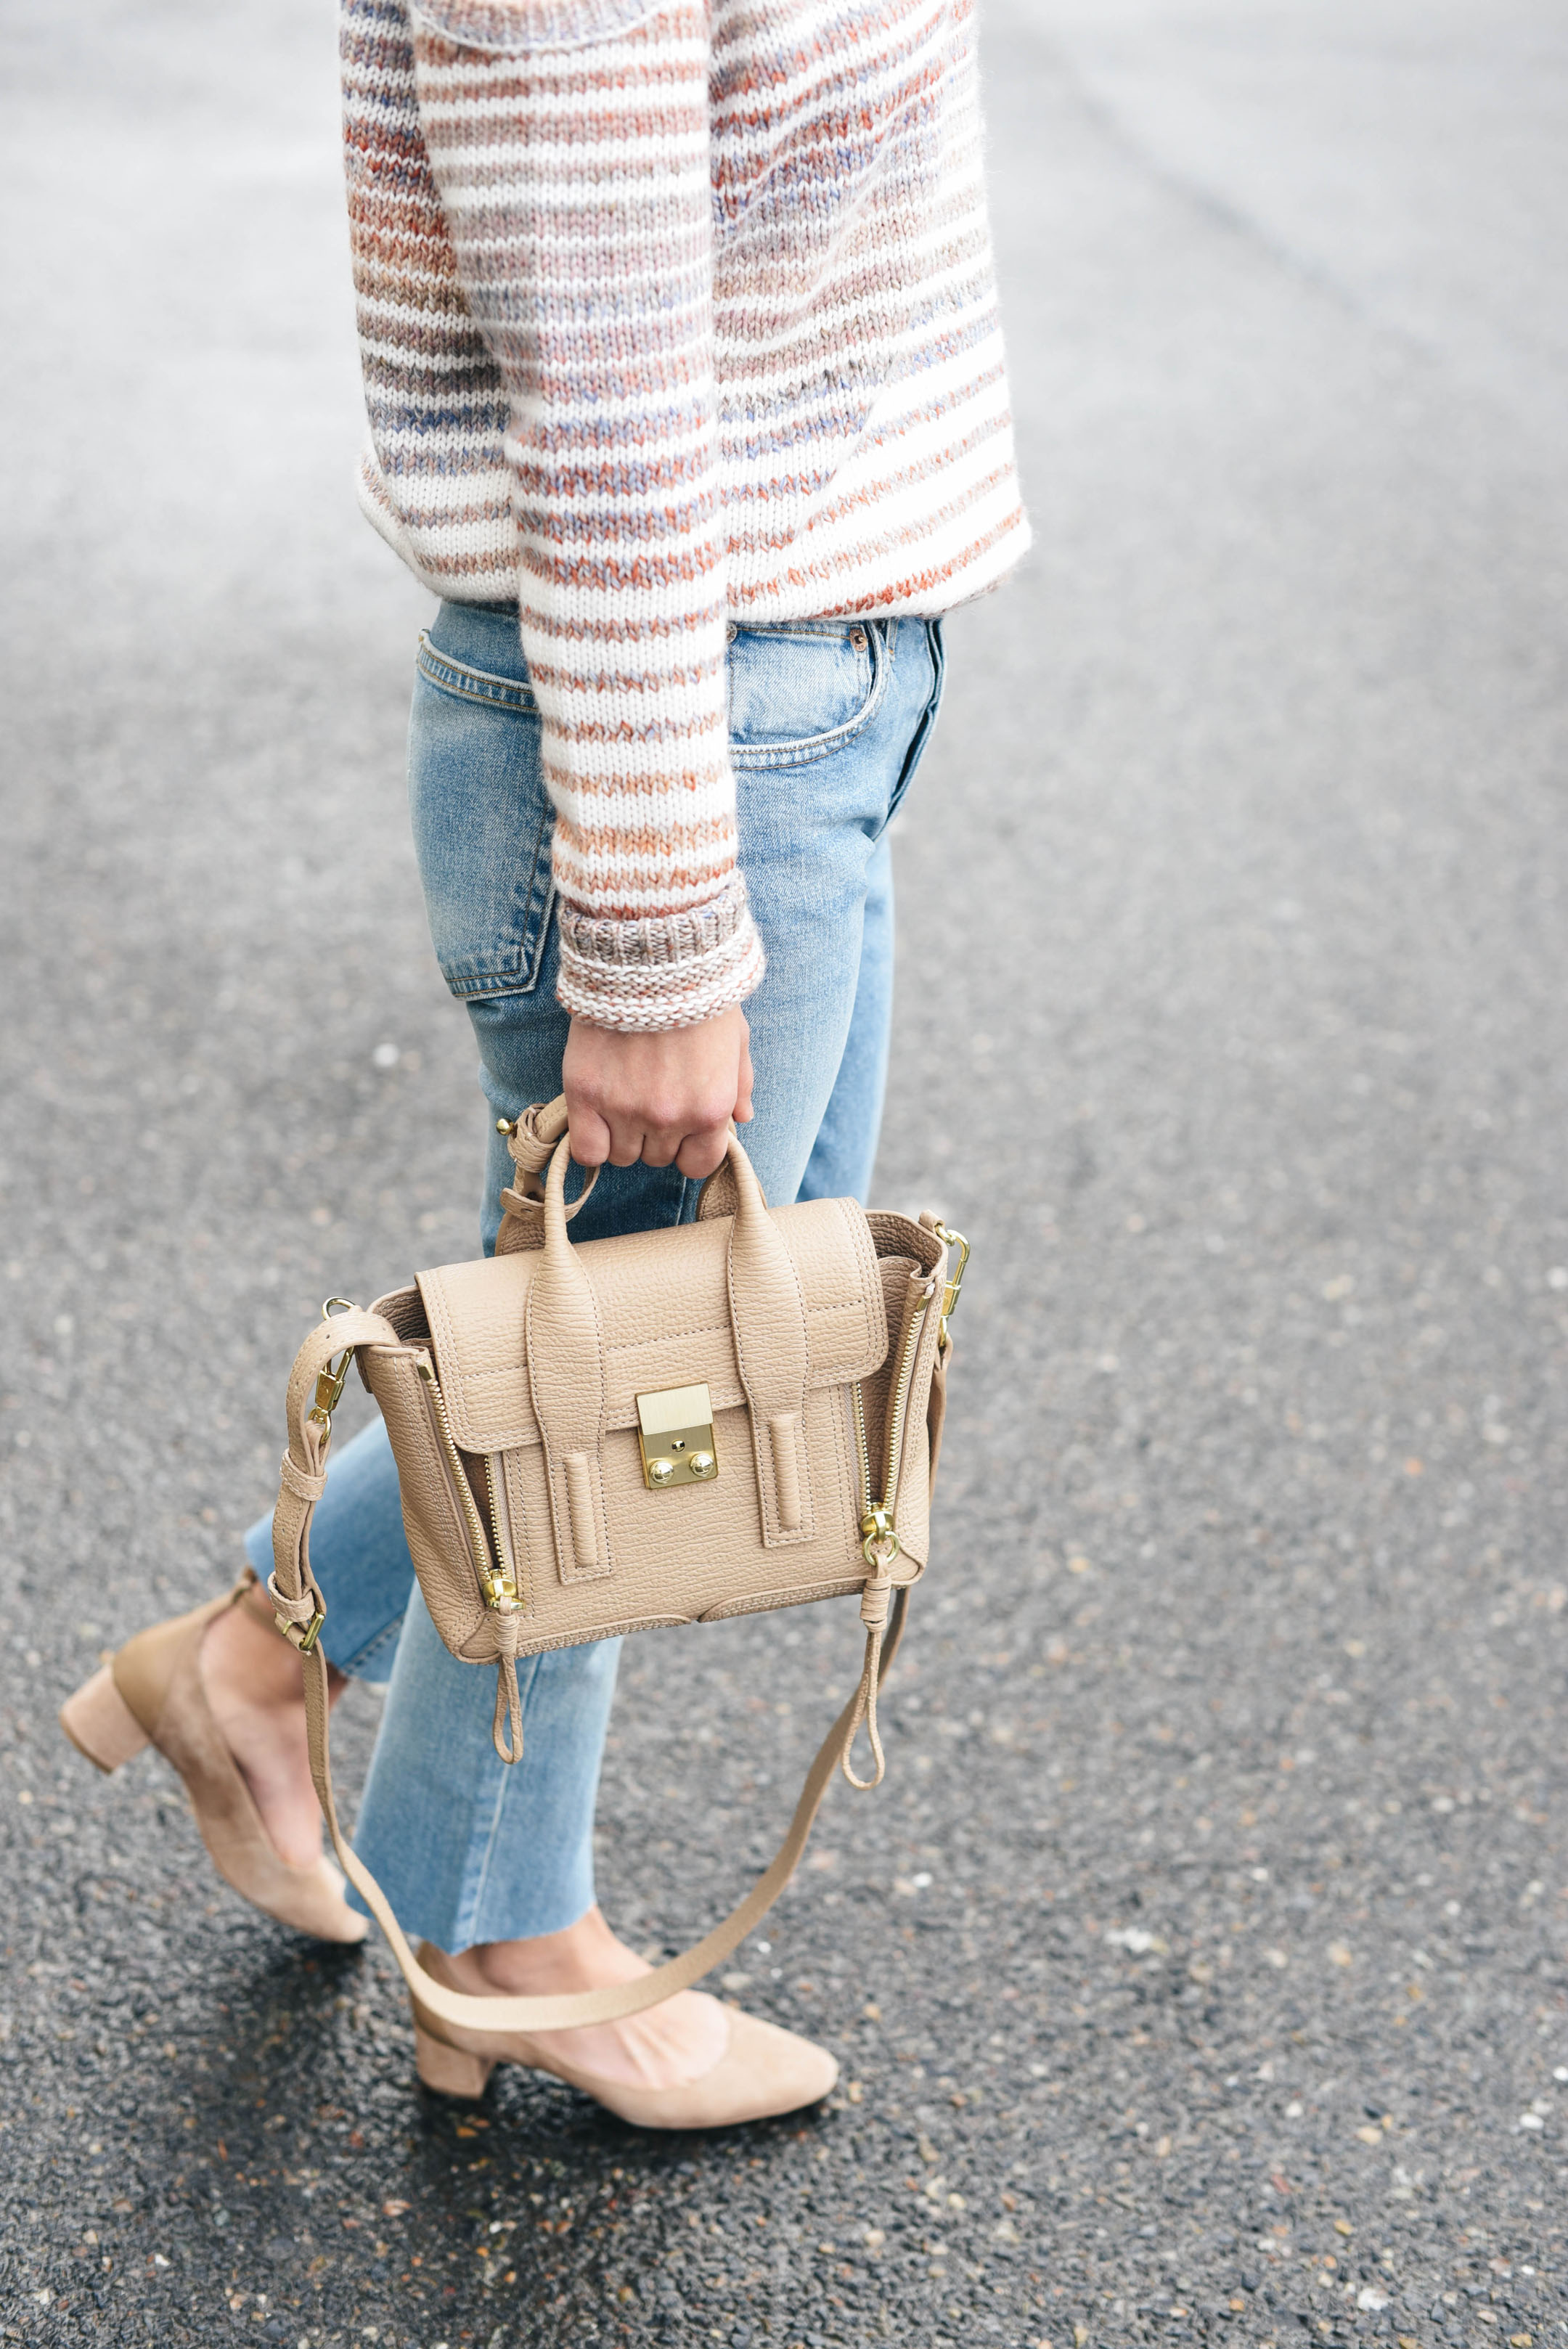 3.1 Phillip Lim Mini Pashli Leather Satchel in cashew